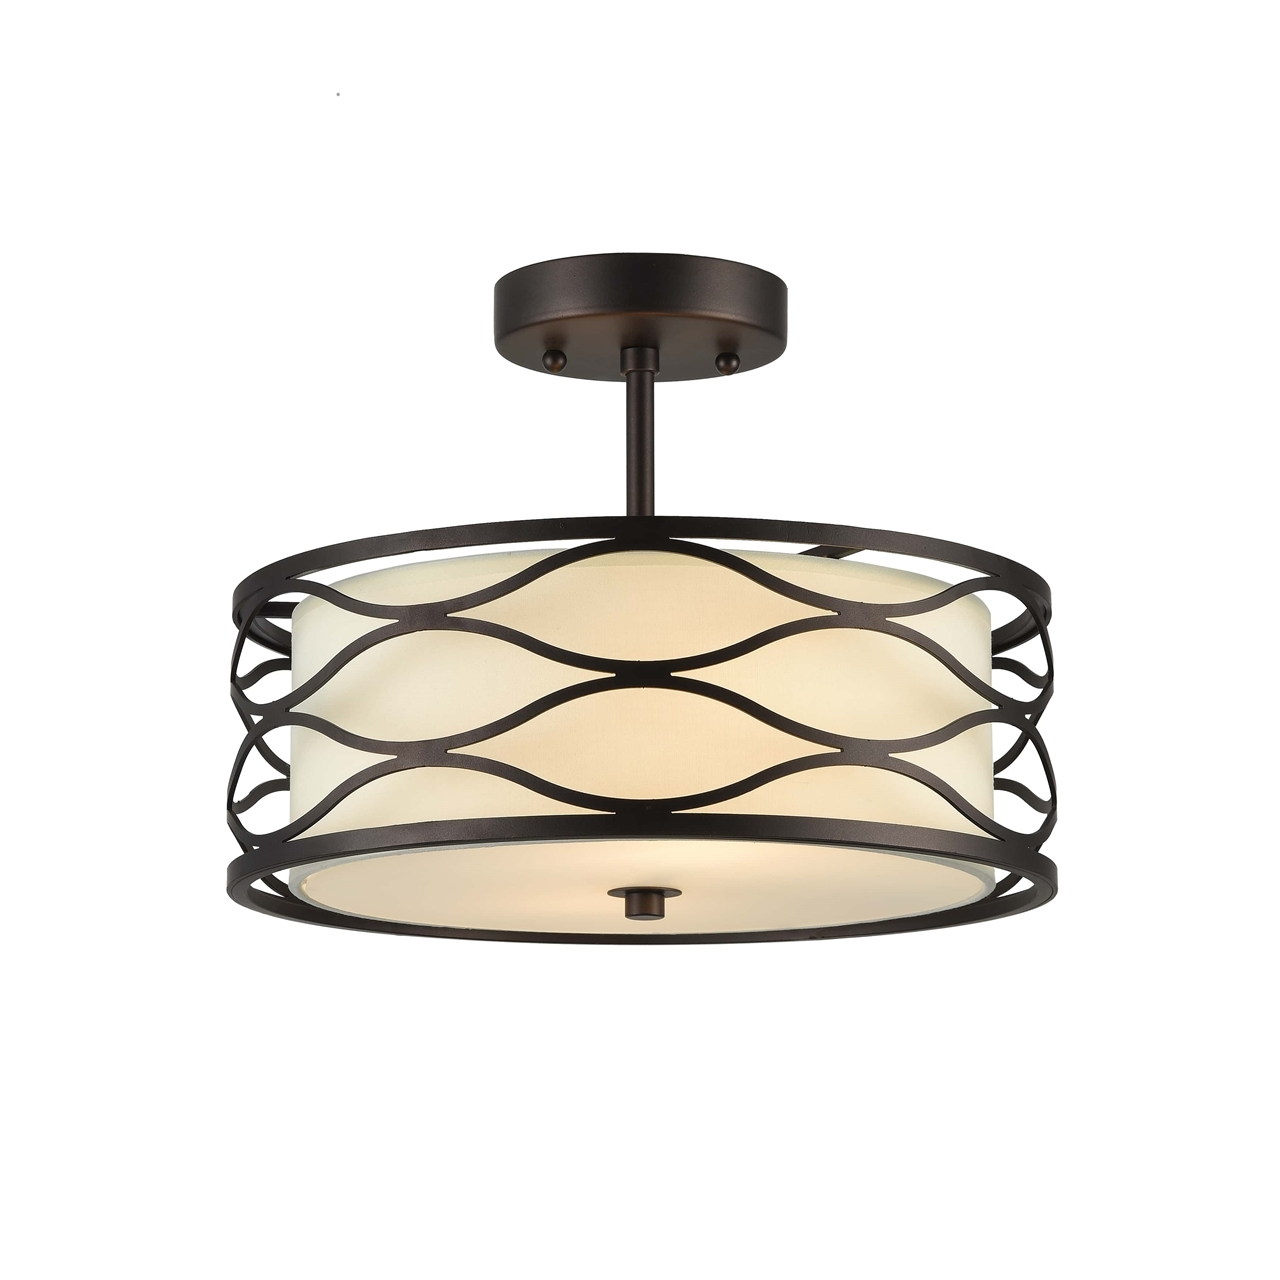 Chloe Lighting Inc Chloe Lighting Gwen Transitional Oil Rubbed Bronze 2 Light Semi Flush